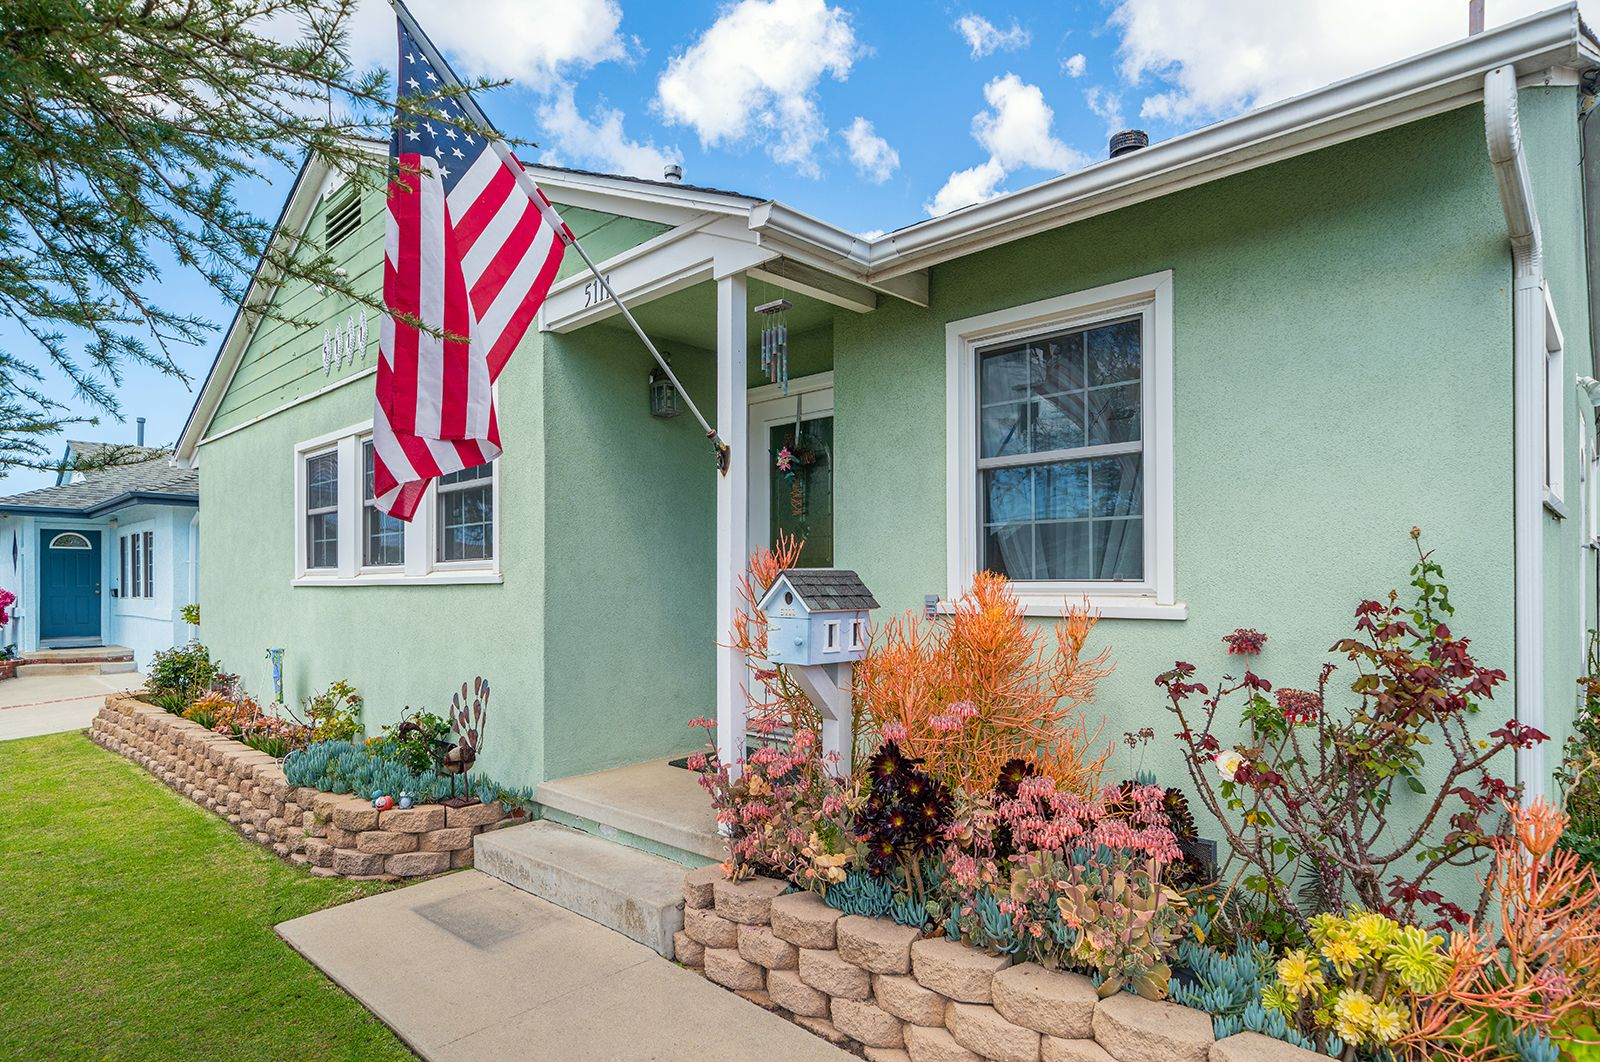 Single Family Homes for Active at 5111 Scott Street, Torrance, CA 90503 5111 Scott Street Torrance, California 90503 United States